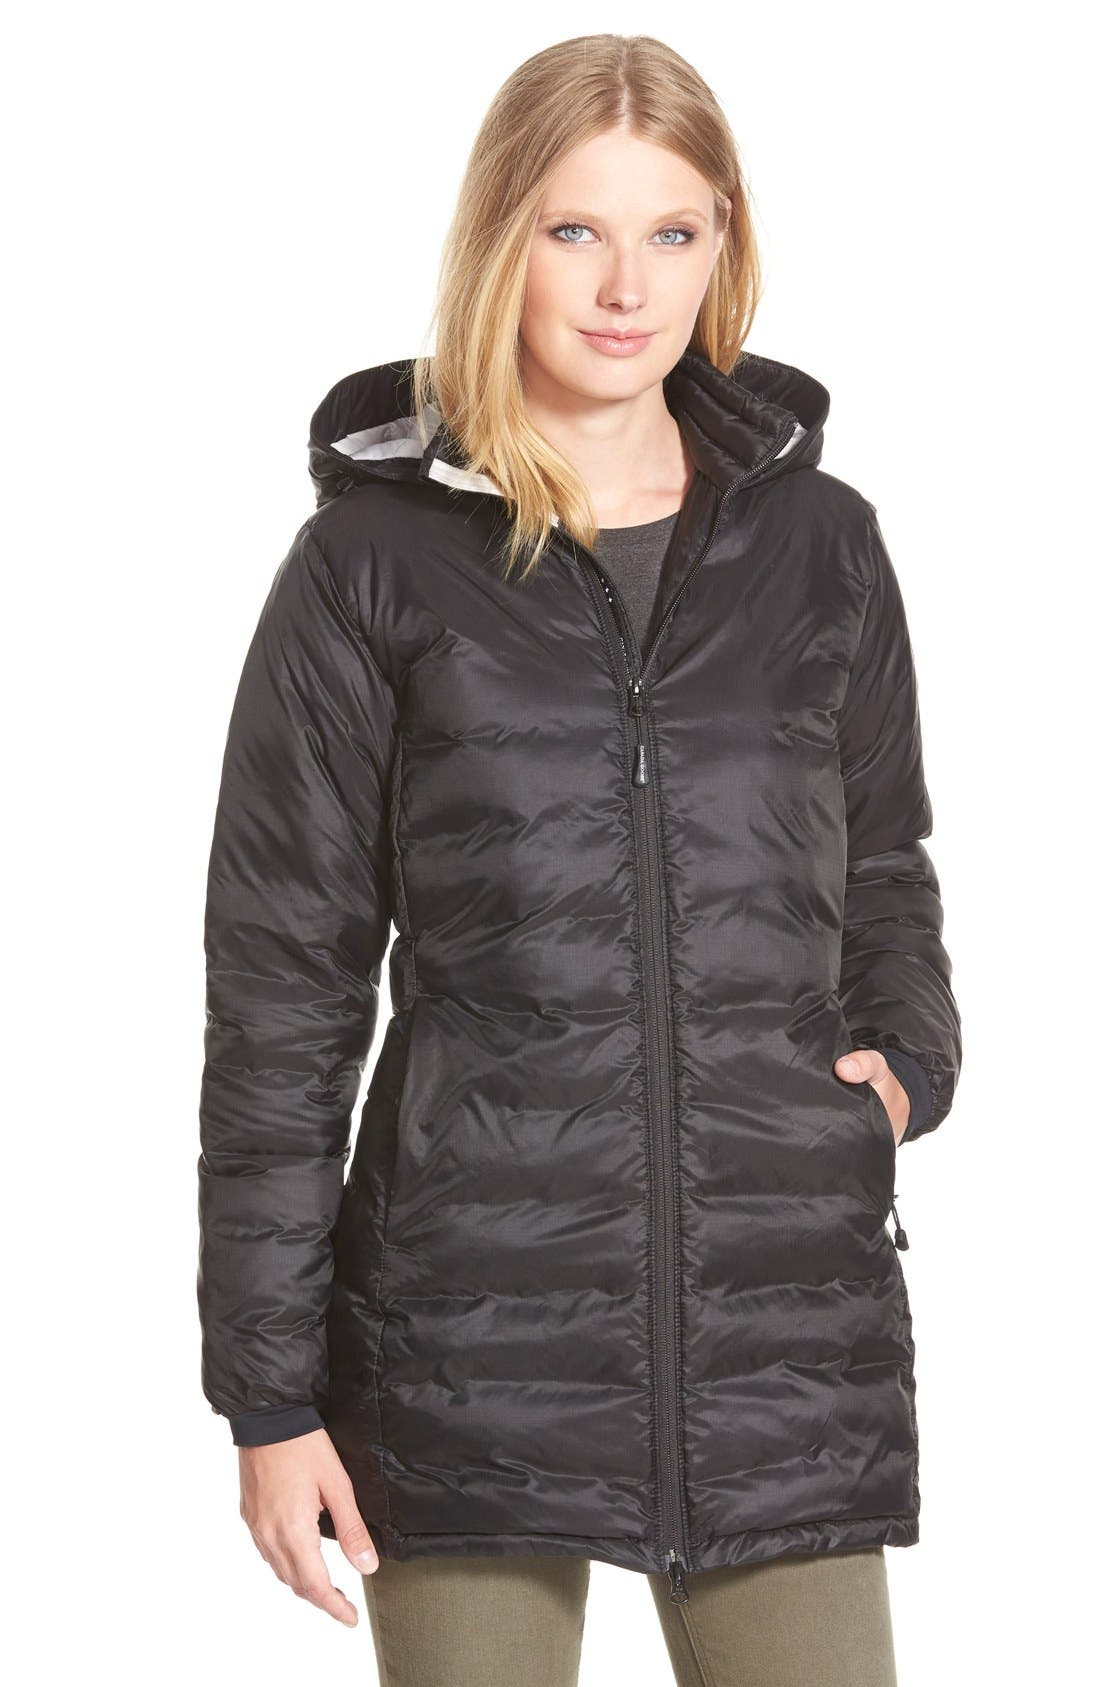 CANADA GOOSE 'Camp' Slim Fit Hooded Packable Down Jacket, Main, color, BLACK